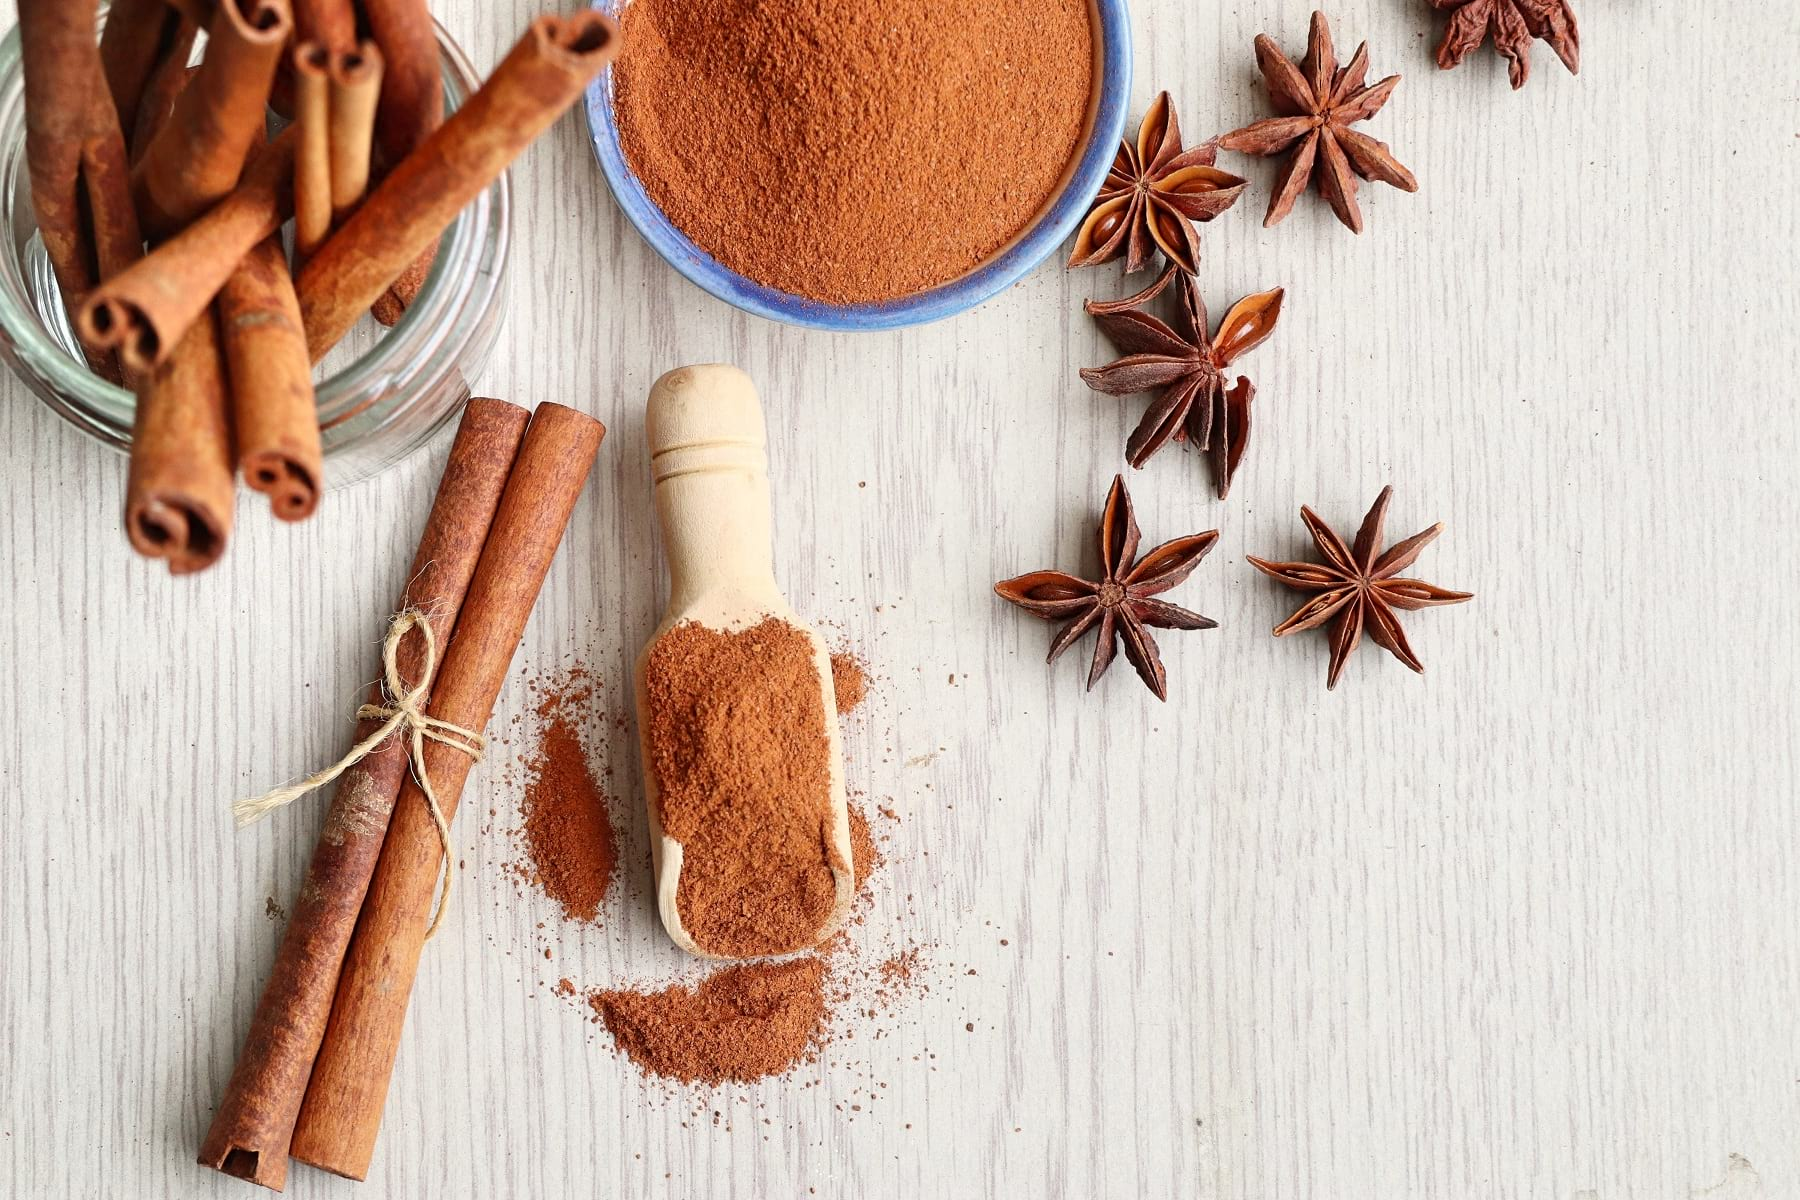 Benefits of cinnamon on skin